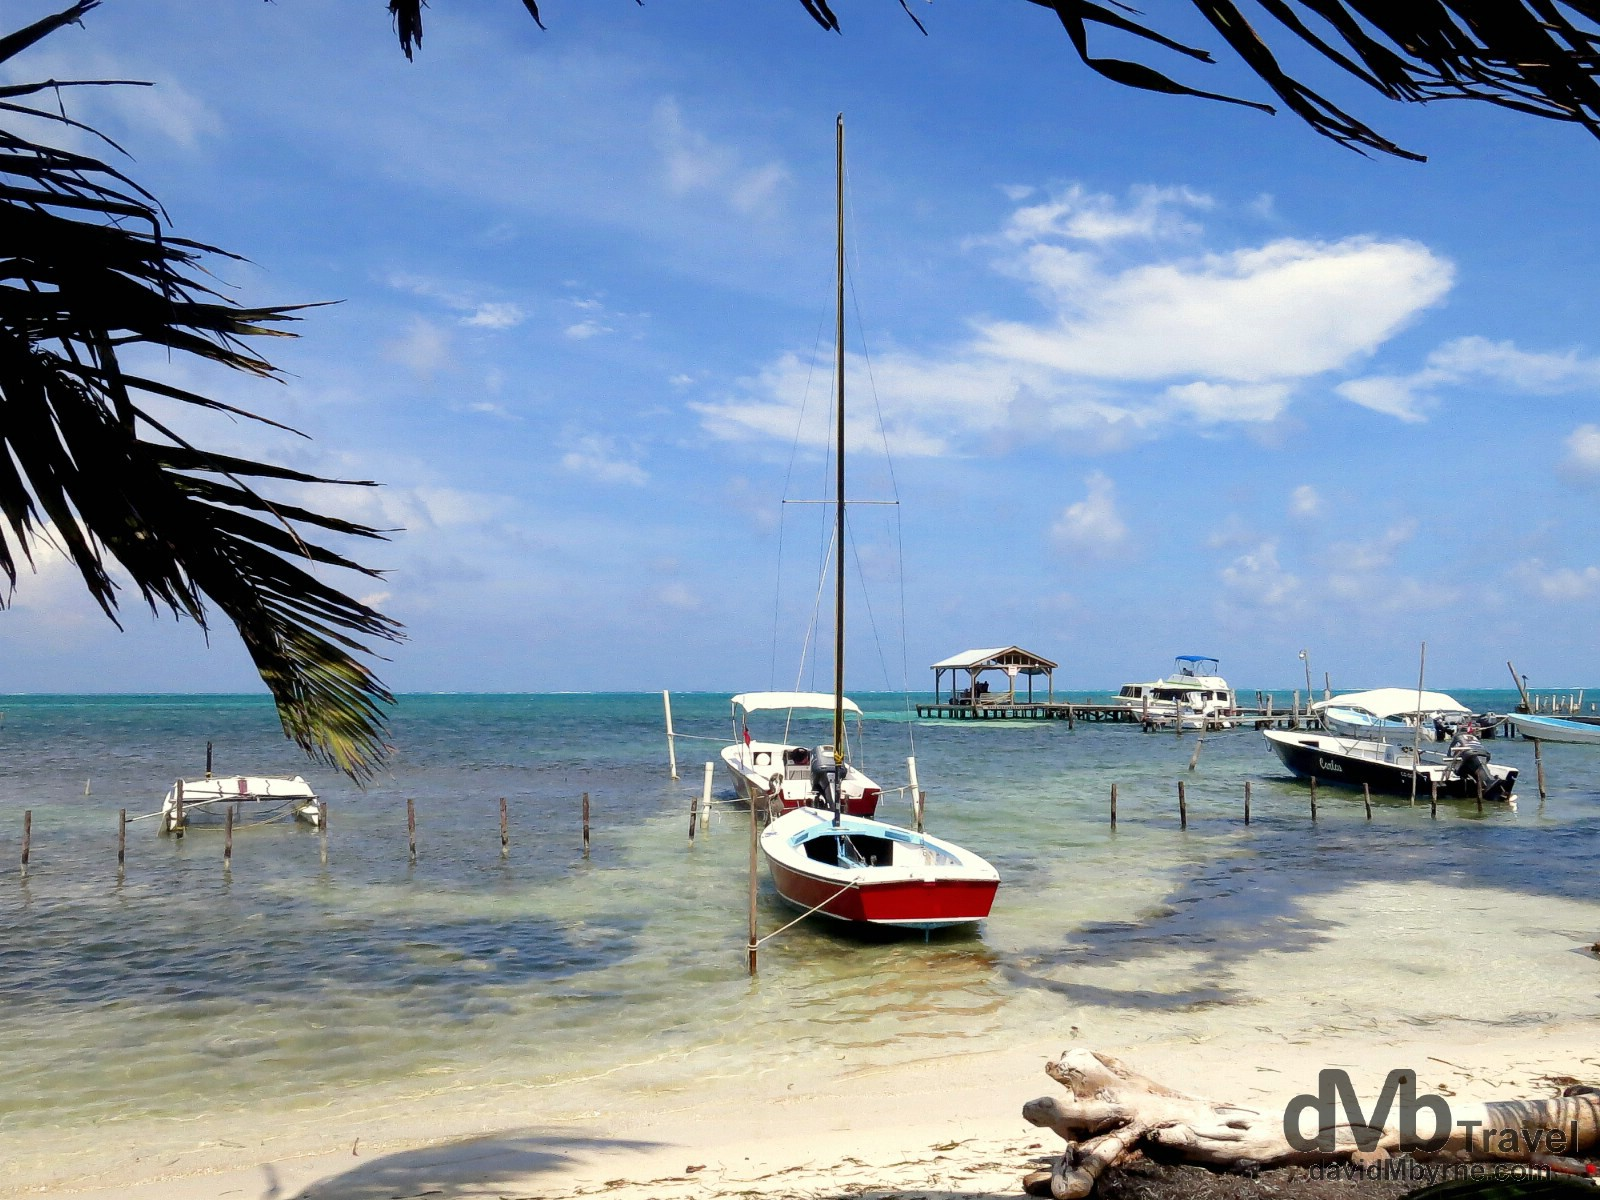 Caye Caulker, Belize. May 13th 2013.